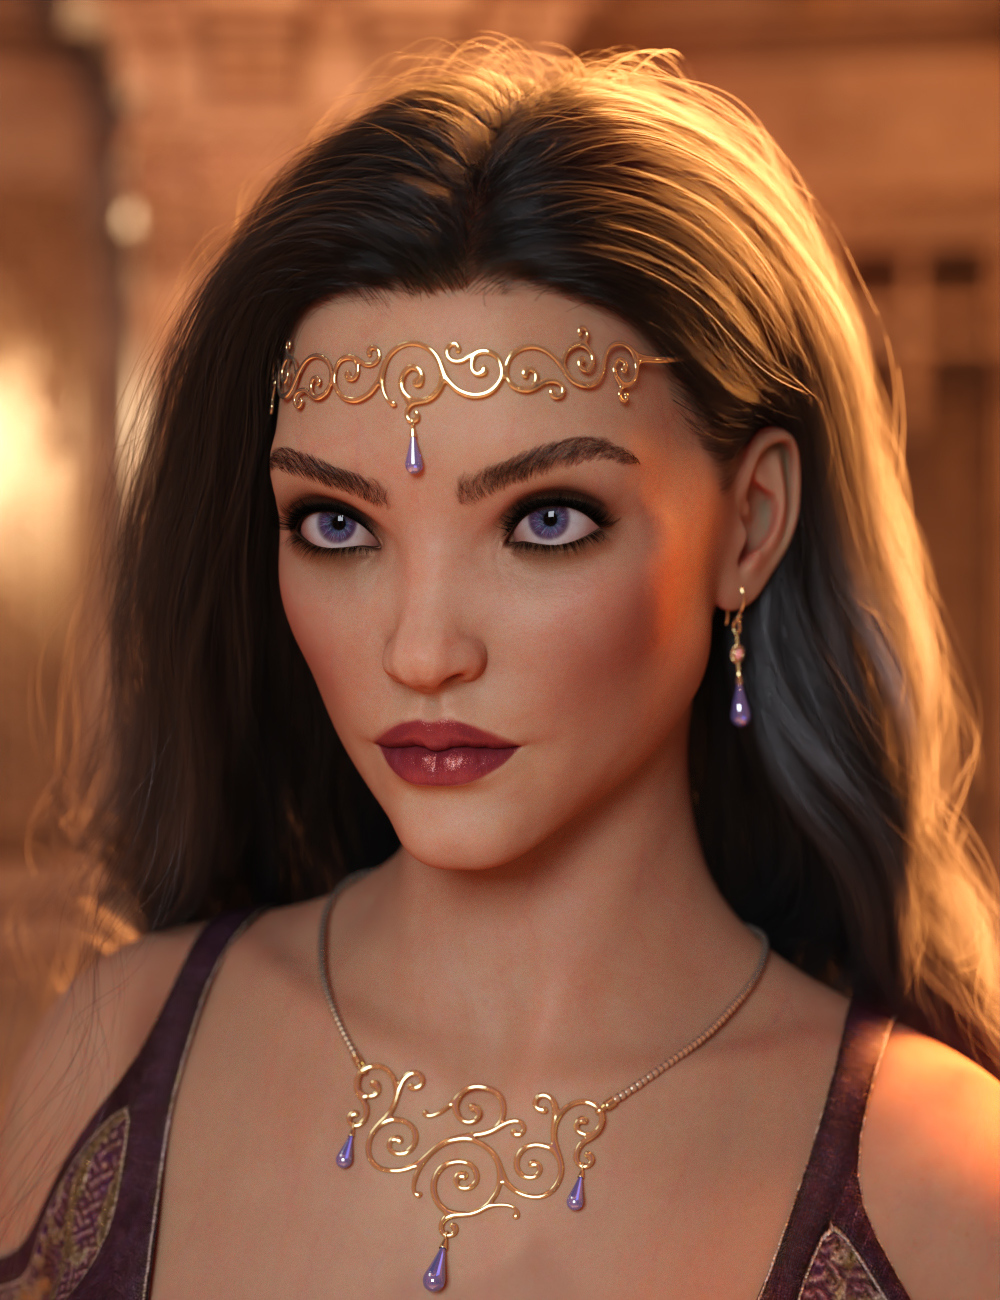 Canilyra HD For Genesis 8.1 Female by: Vex, 3D Models by Daz 3D